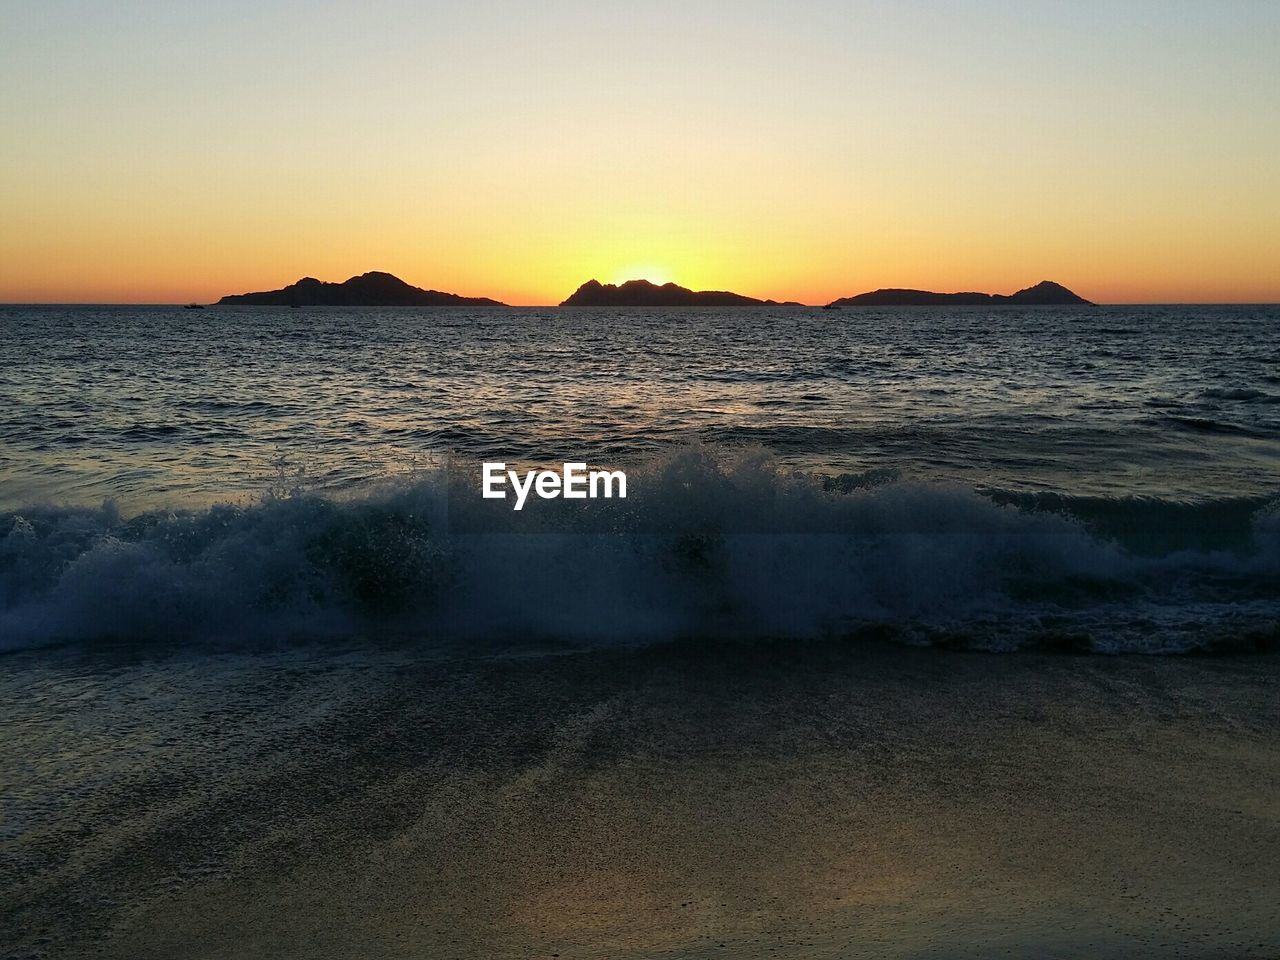 sea, sunset, beauty in nature, water, wave, scenics, nature, beach, no people, outdoors, tranquility, sky, tranquil scene, clear sky, sand, horizon over water, mountain, day